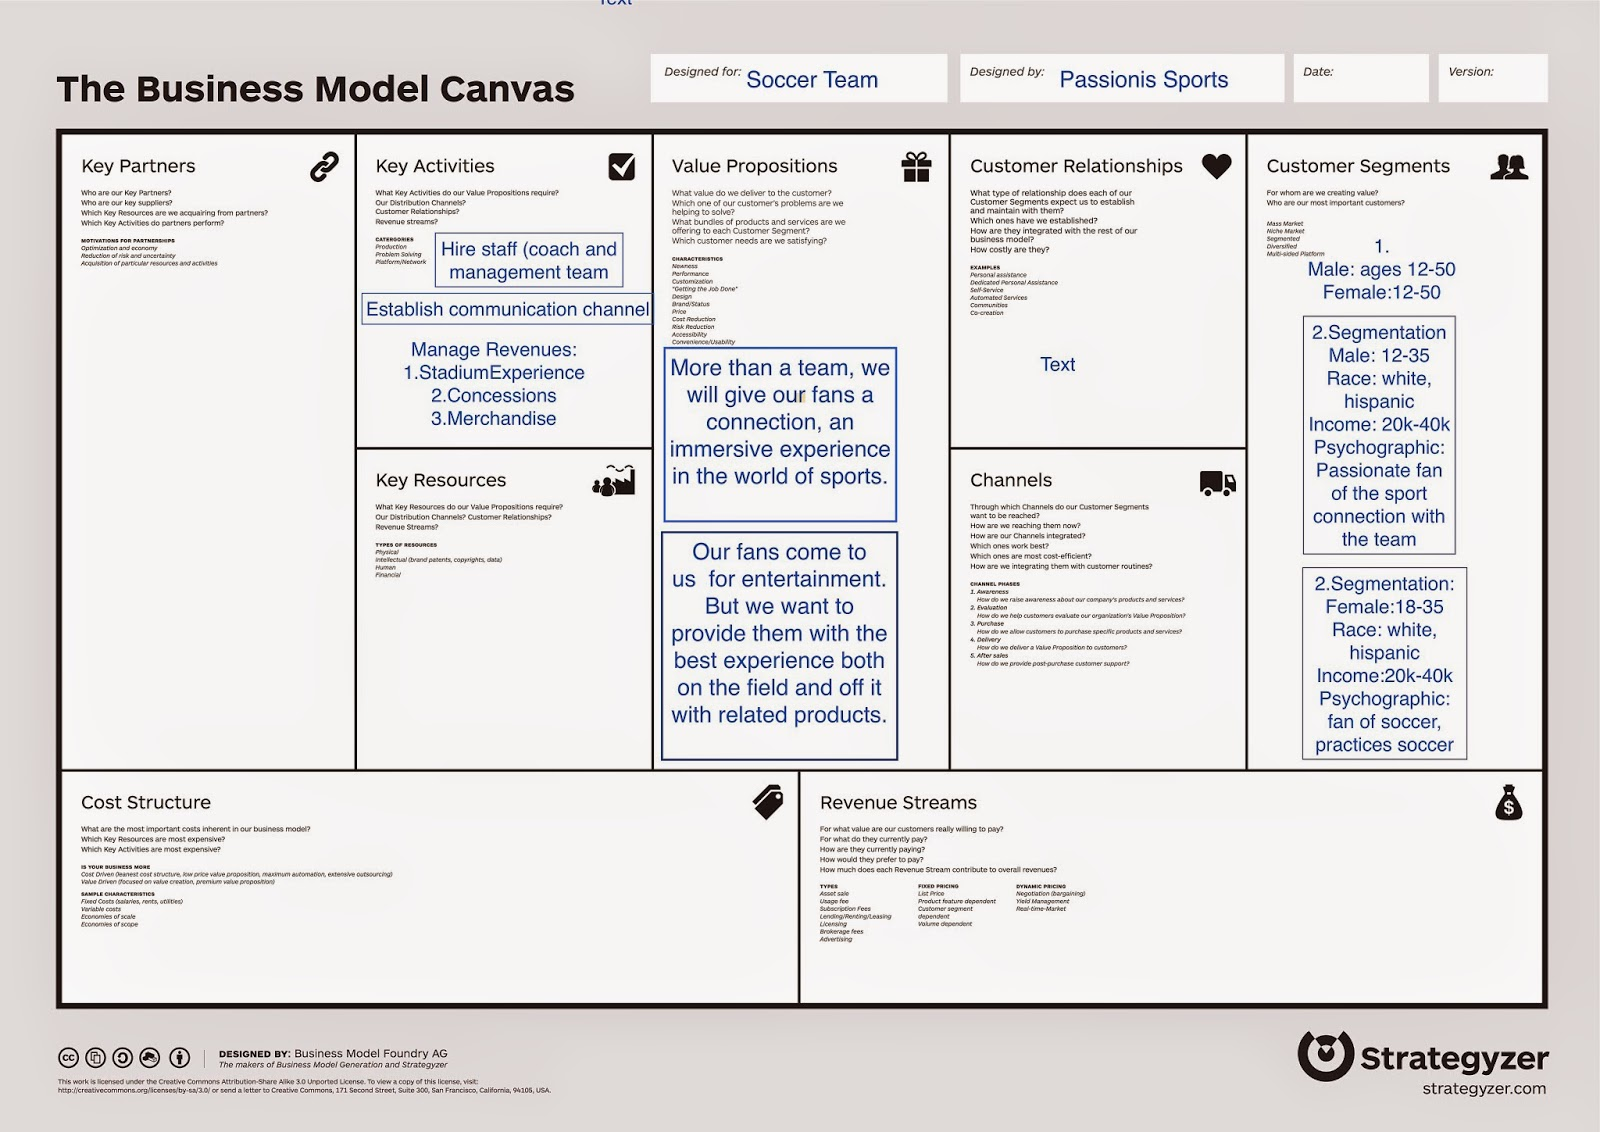 This Are Just Some Of The Example Of Key Activities We Could Have, The  Canvas Provides A Very Visual Tool To Understand And Manage All Of These  Aspects.